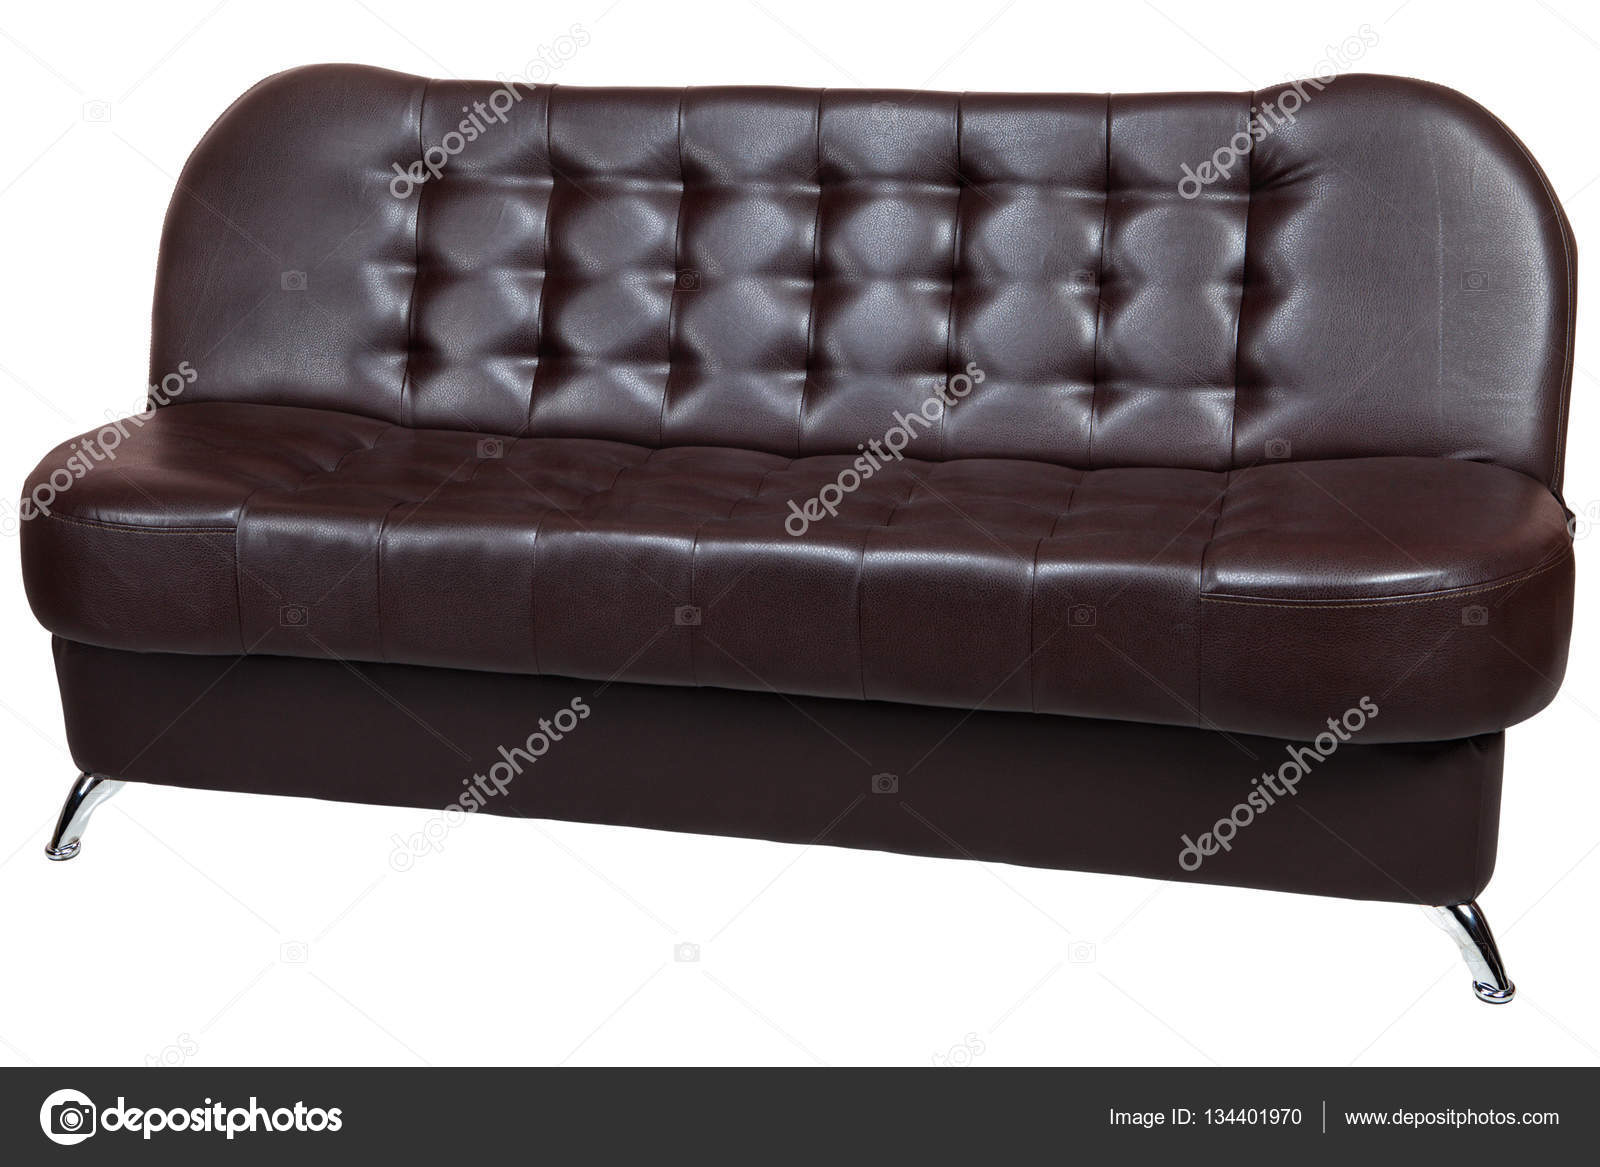 Super Convertible Sofa Bed Faux Leather With Dark Brown Color Caraccident5 Cool Chair Designs And Ideas Caraccident5Info